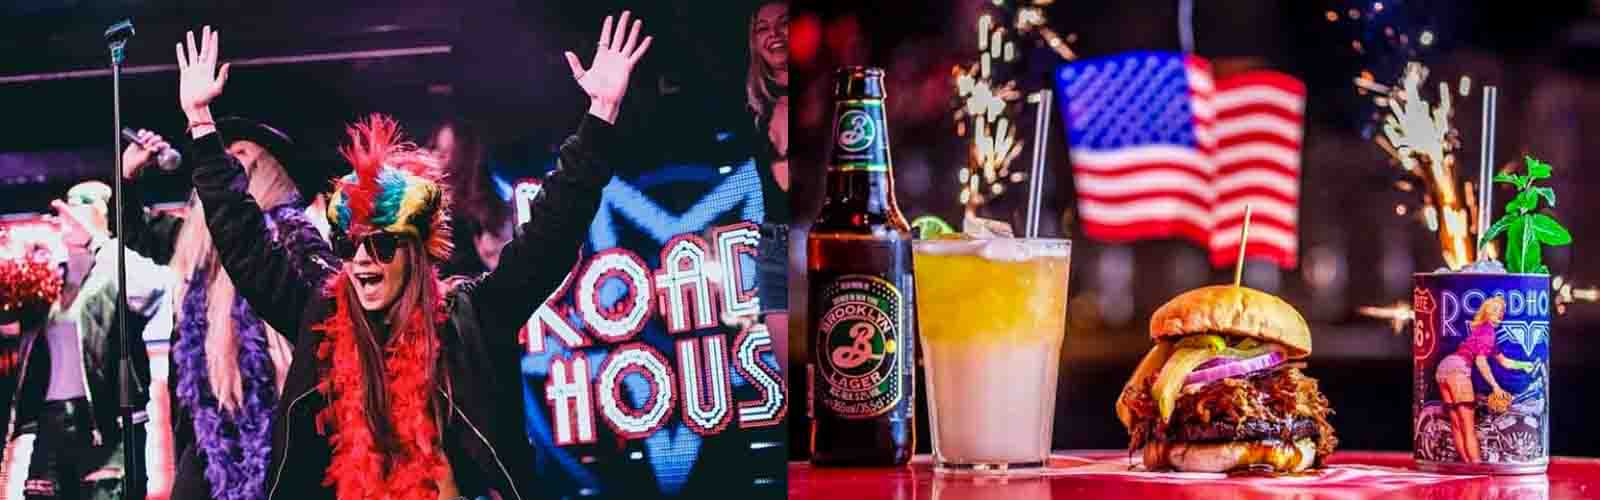 Roadhouse is the place to party in London!